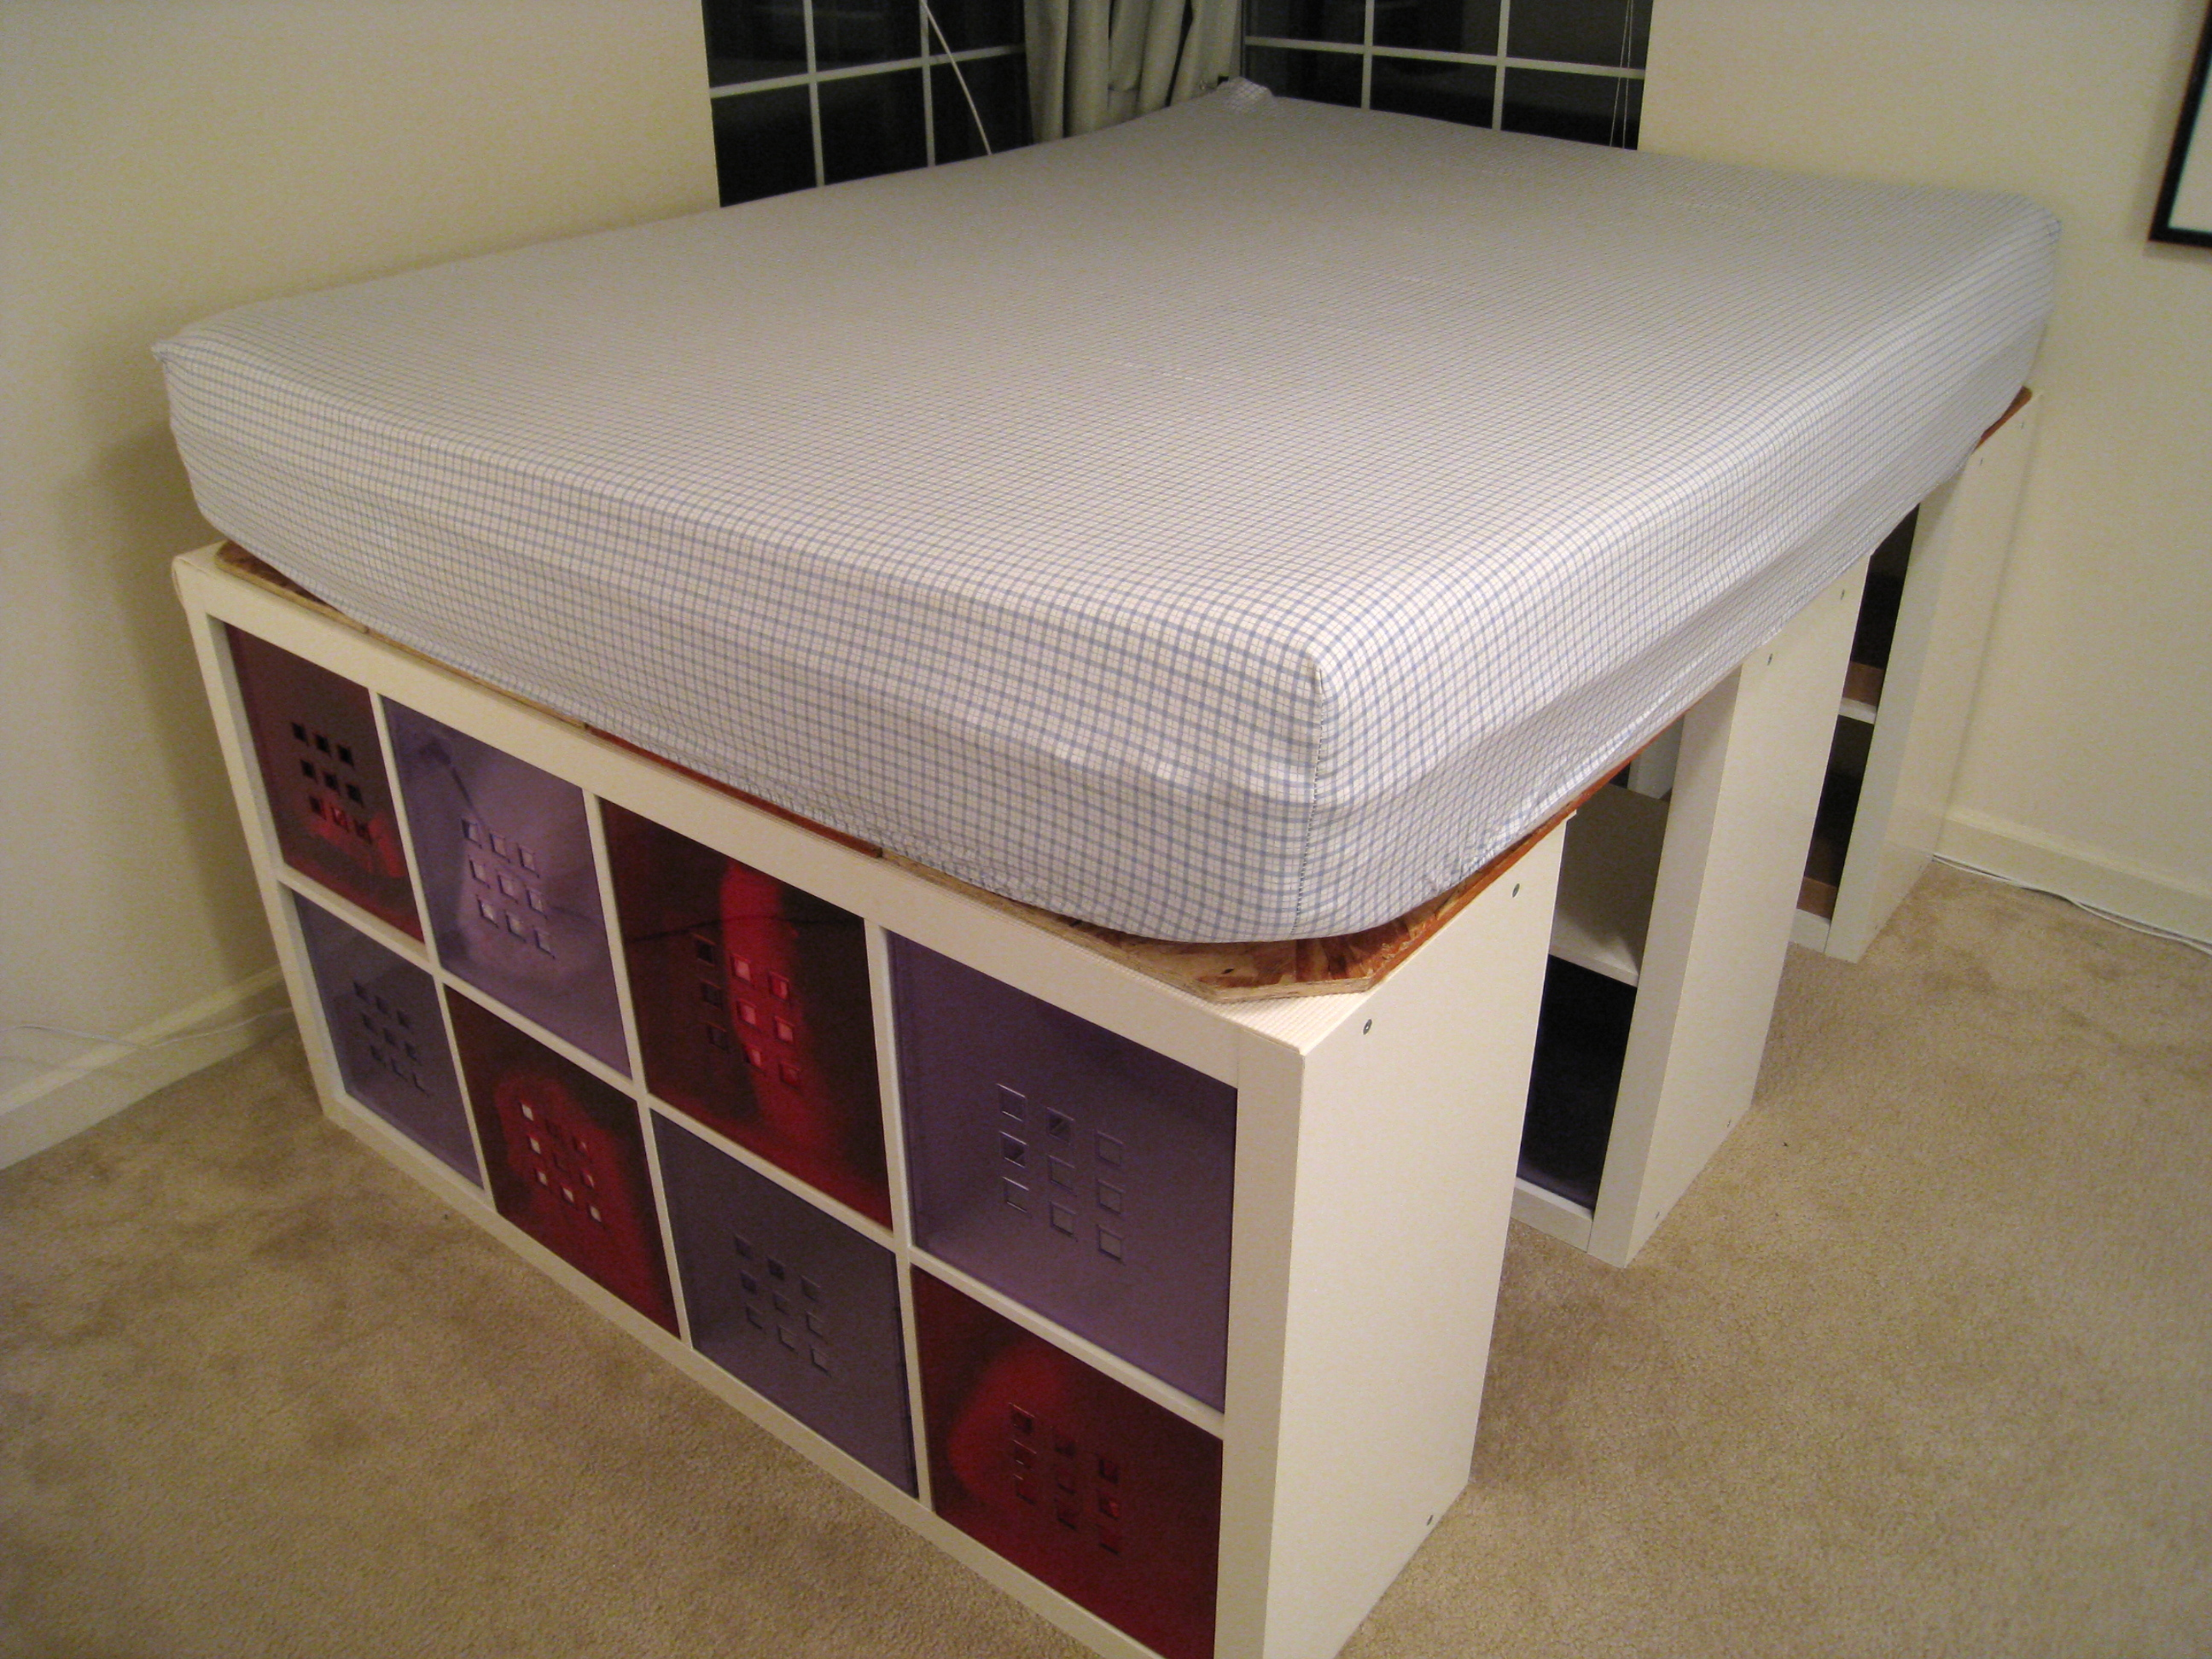 Hack your Bed for More Storage with Ikea